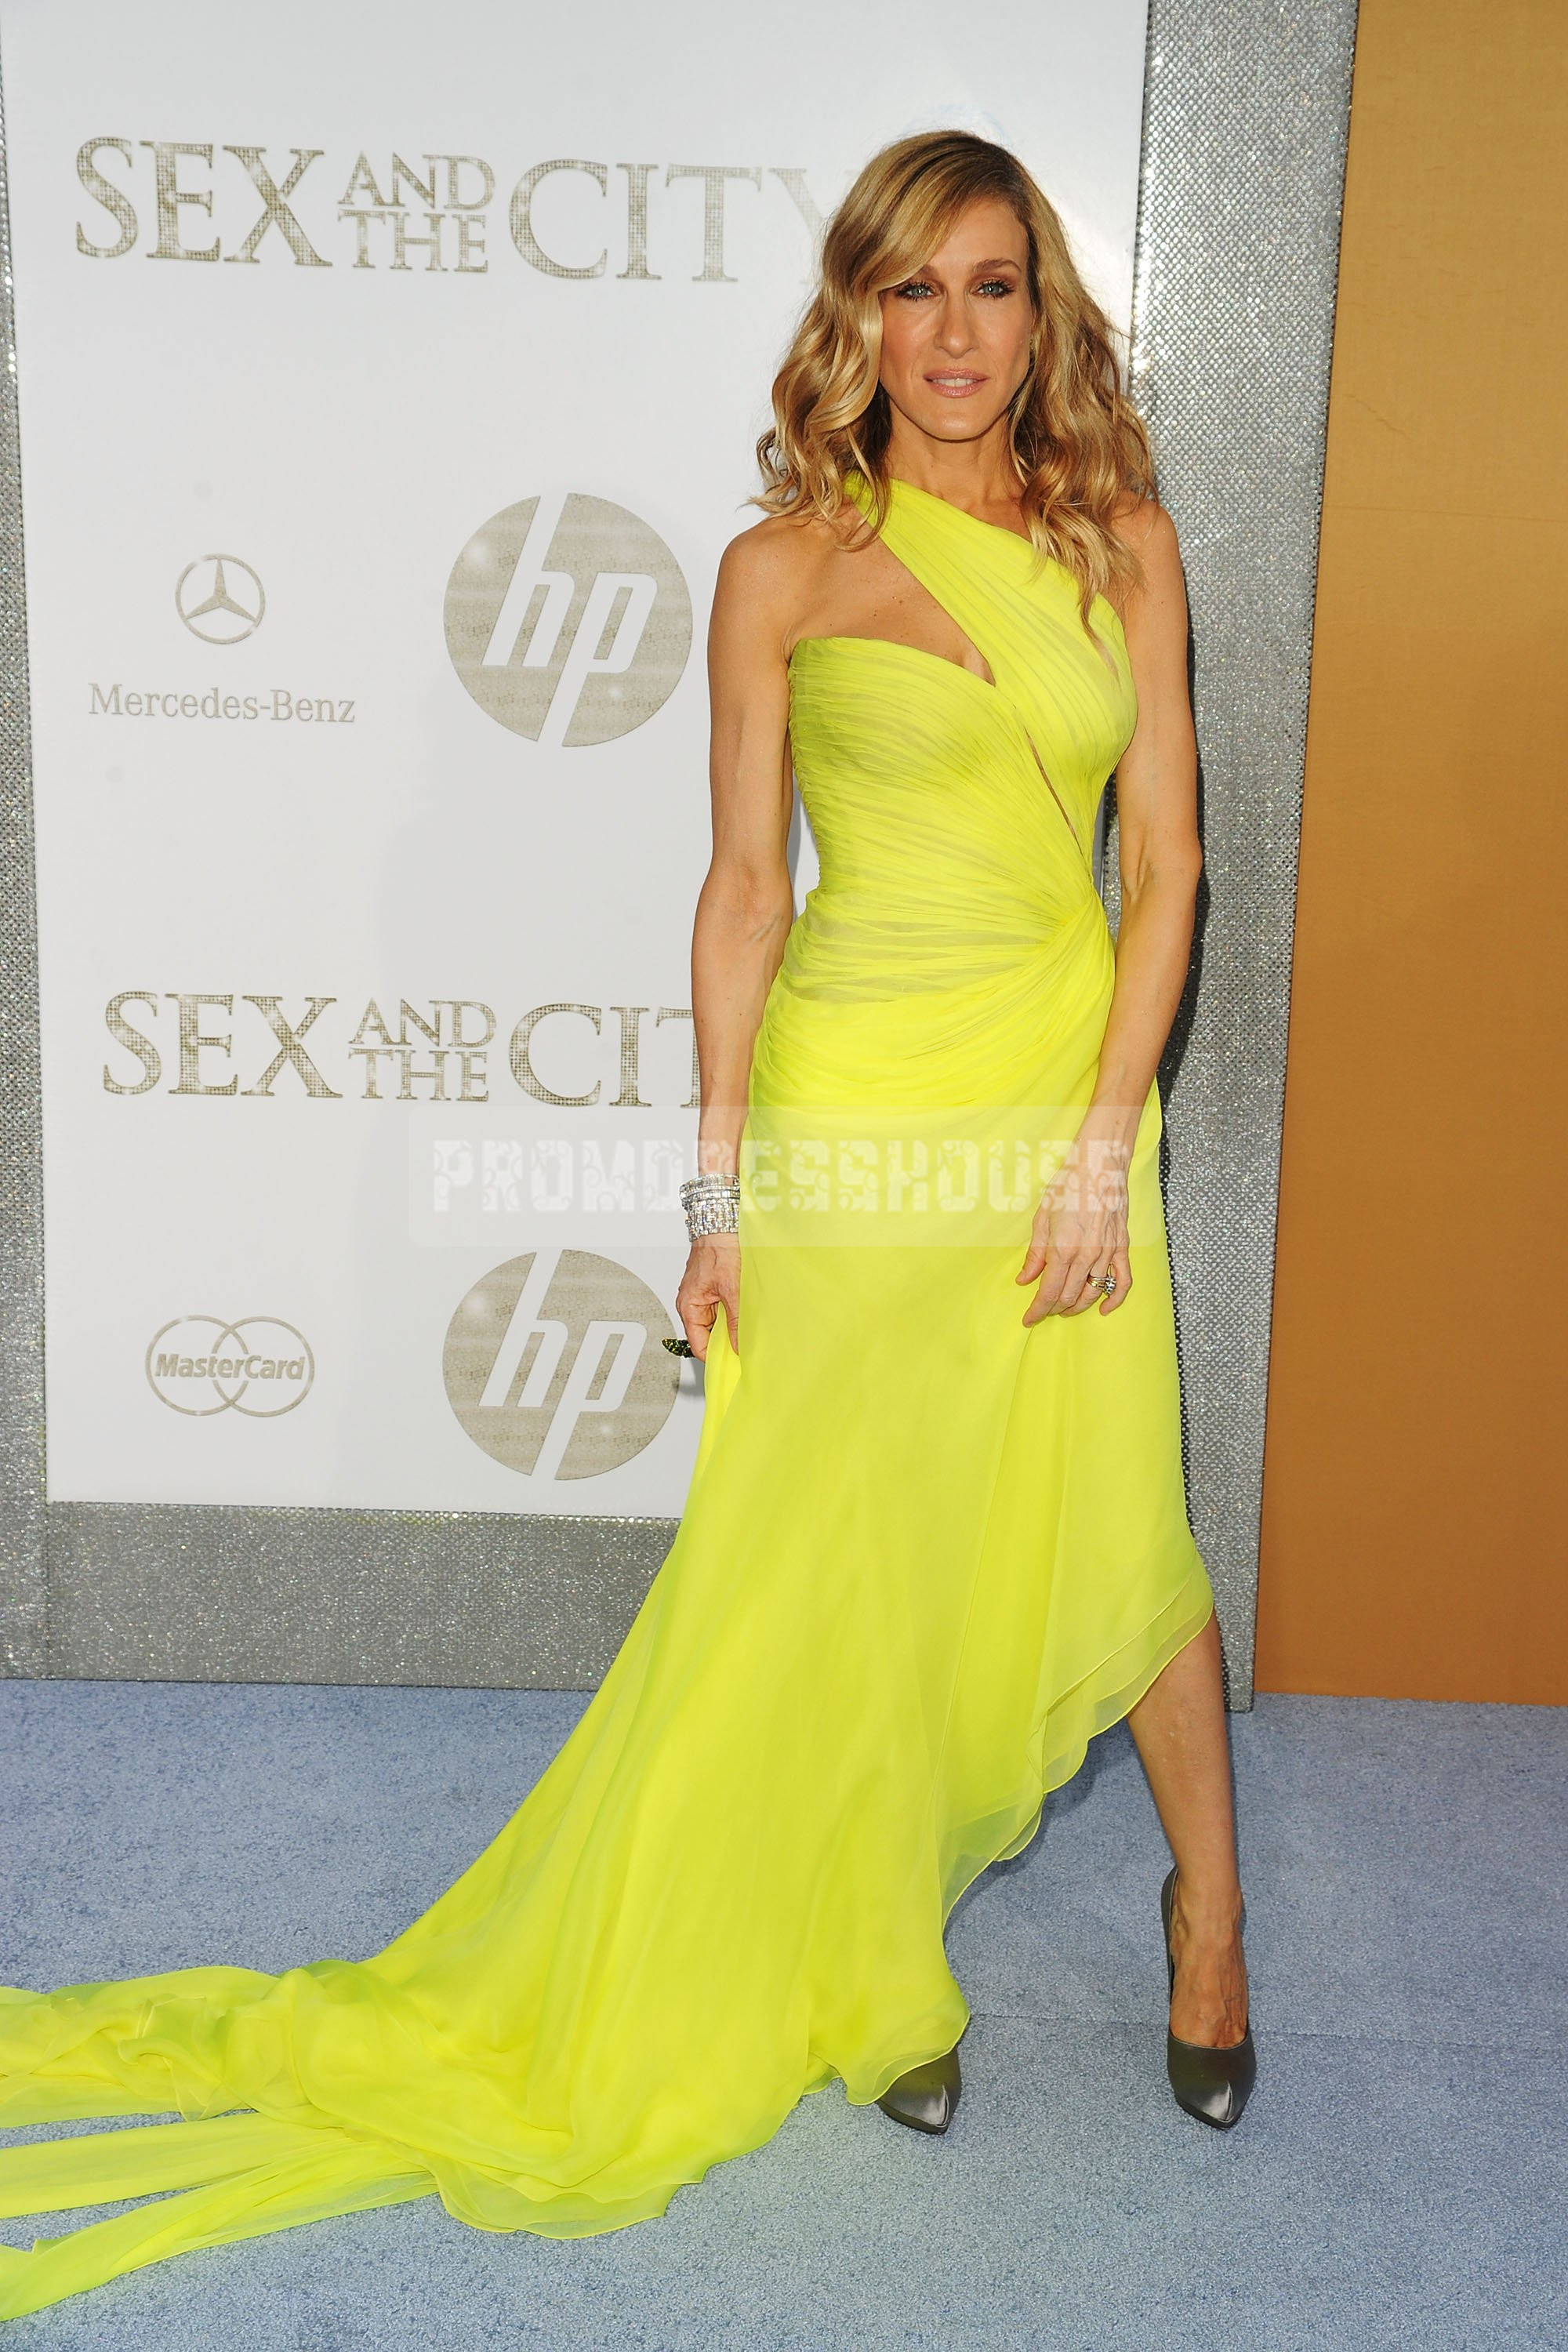 One Shoulder Fashion A-line Ruching Yellow Celebrity Dress - Promdresshouse.com